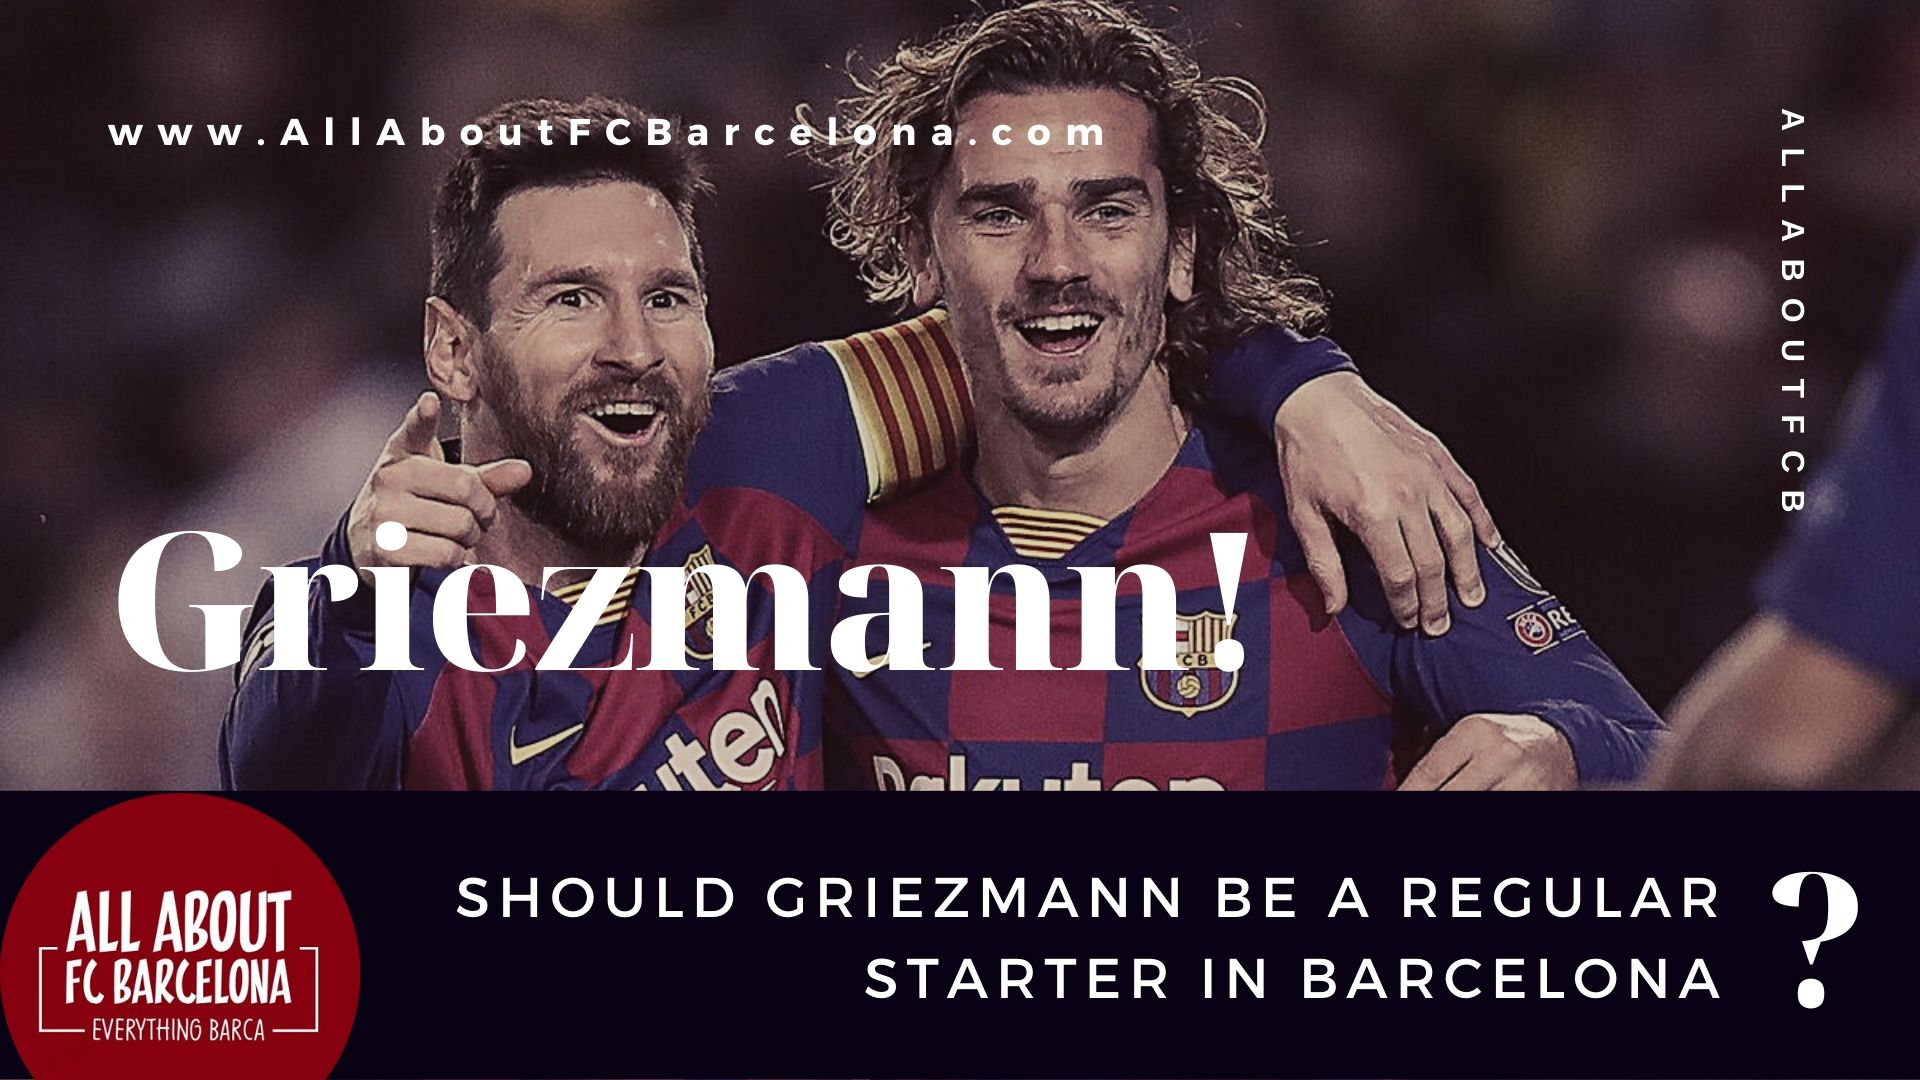 Has Griezmann Done Enough to Deserve being a regular Starter at Barcelona?